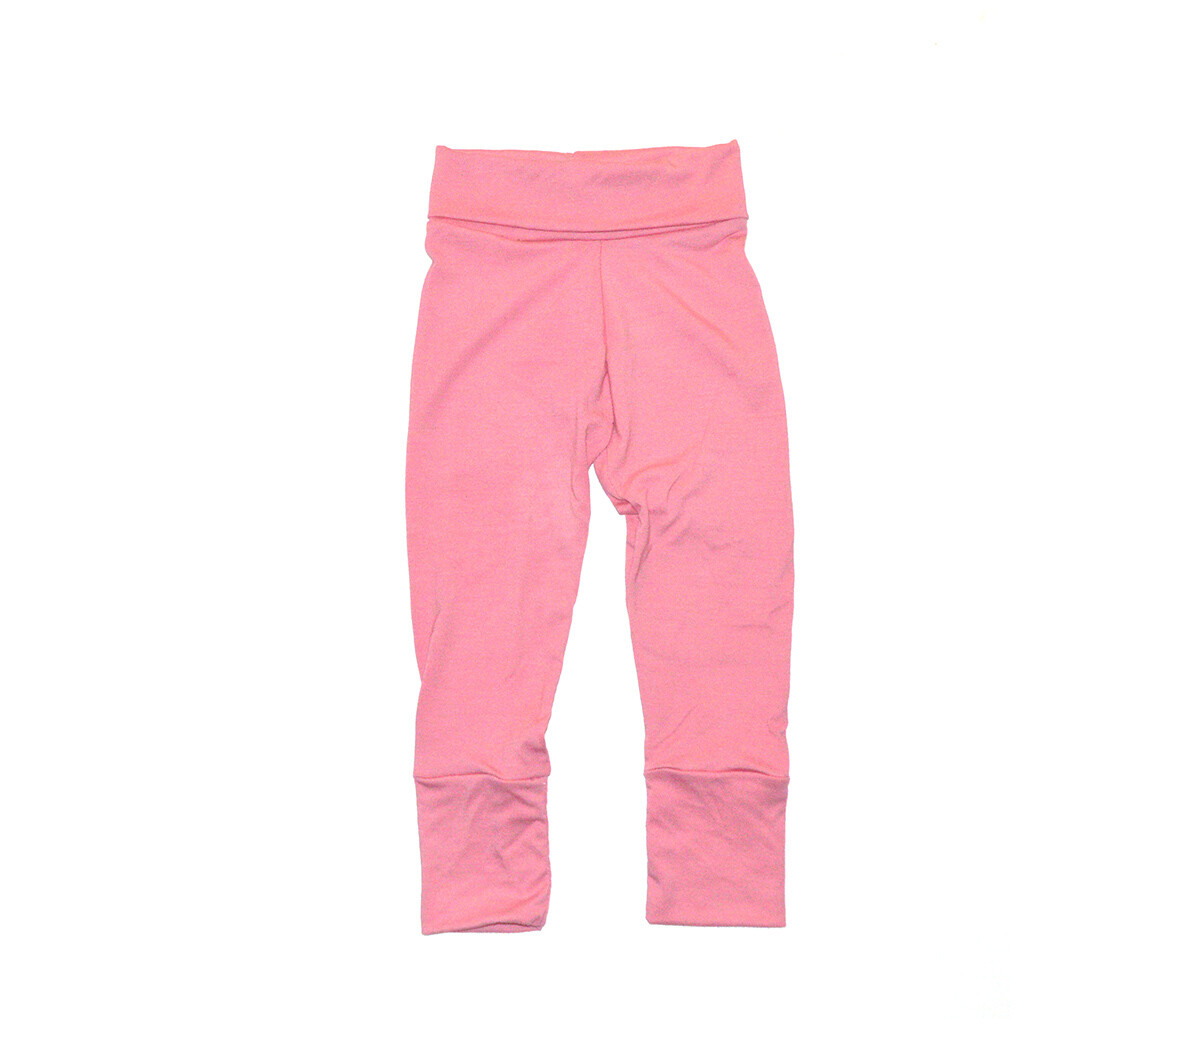 Little Sprout™ One-Size Grow with Me Pants in Rose Made with Bamboo | NEW Fall 2019